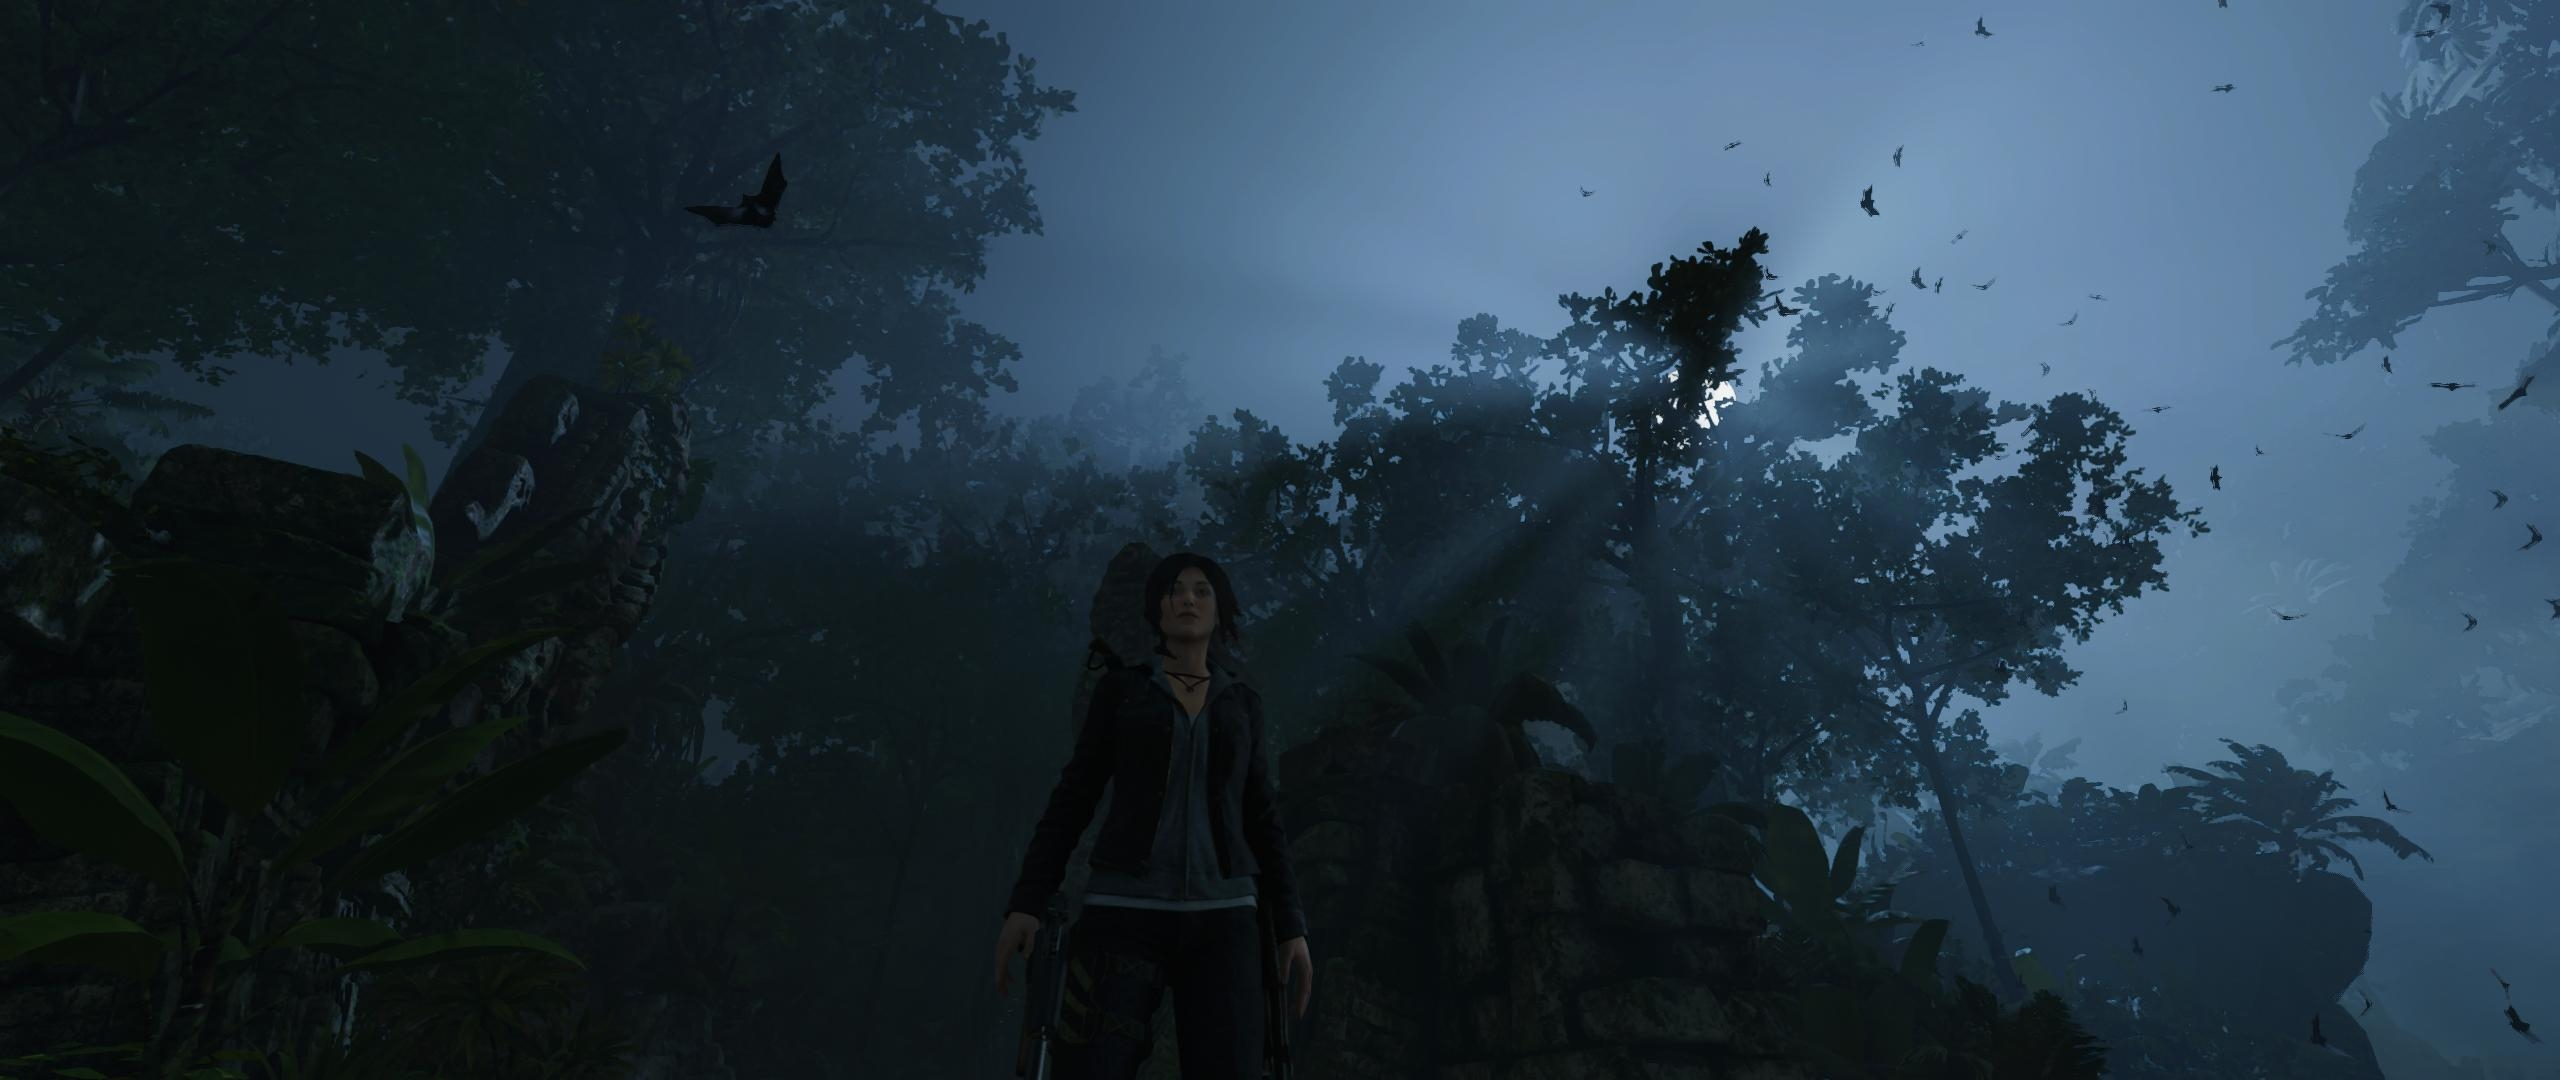 shadow_of_the_tomb_raider-242